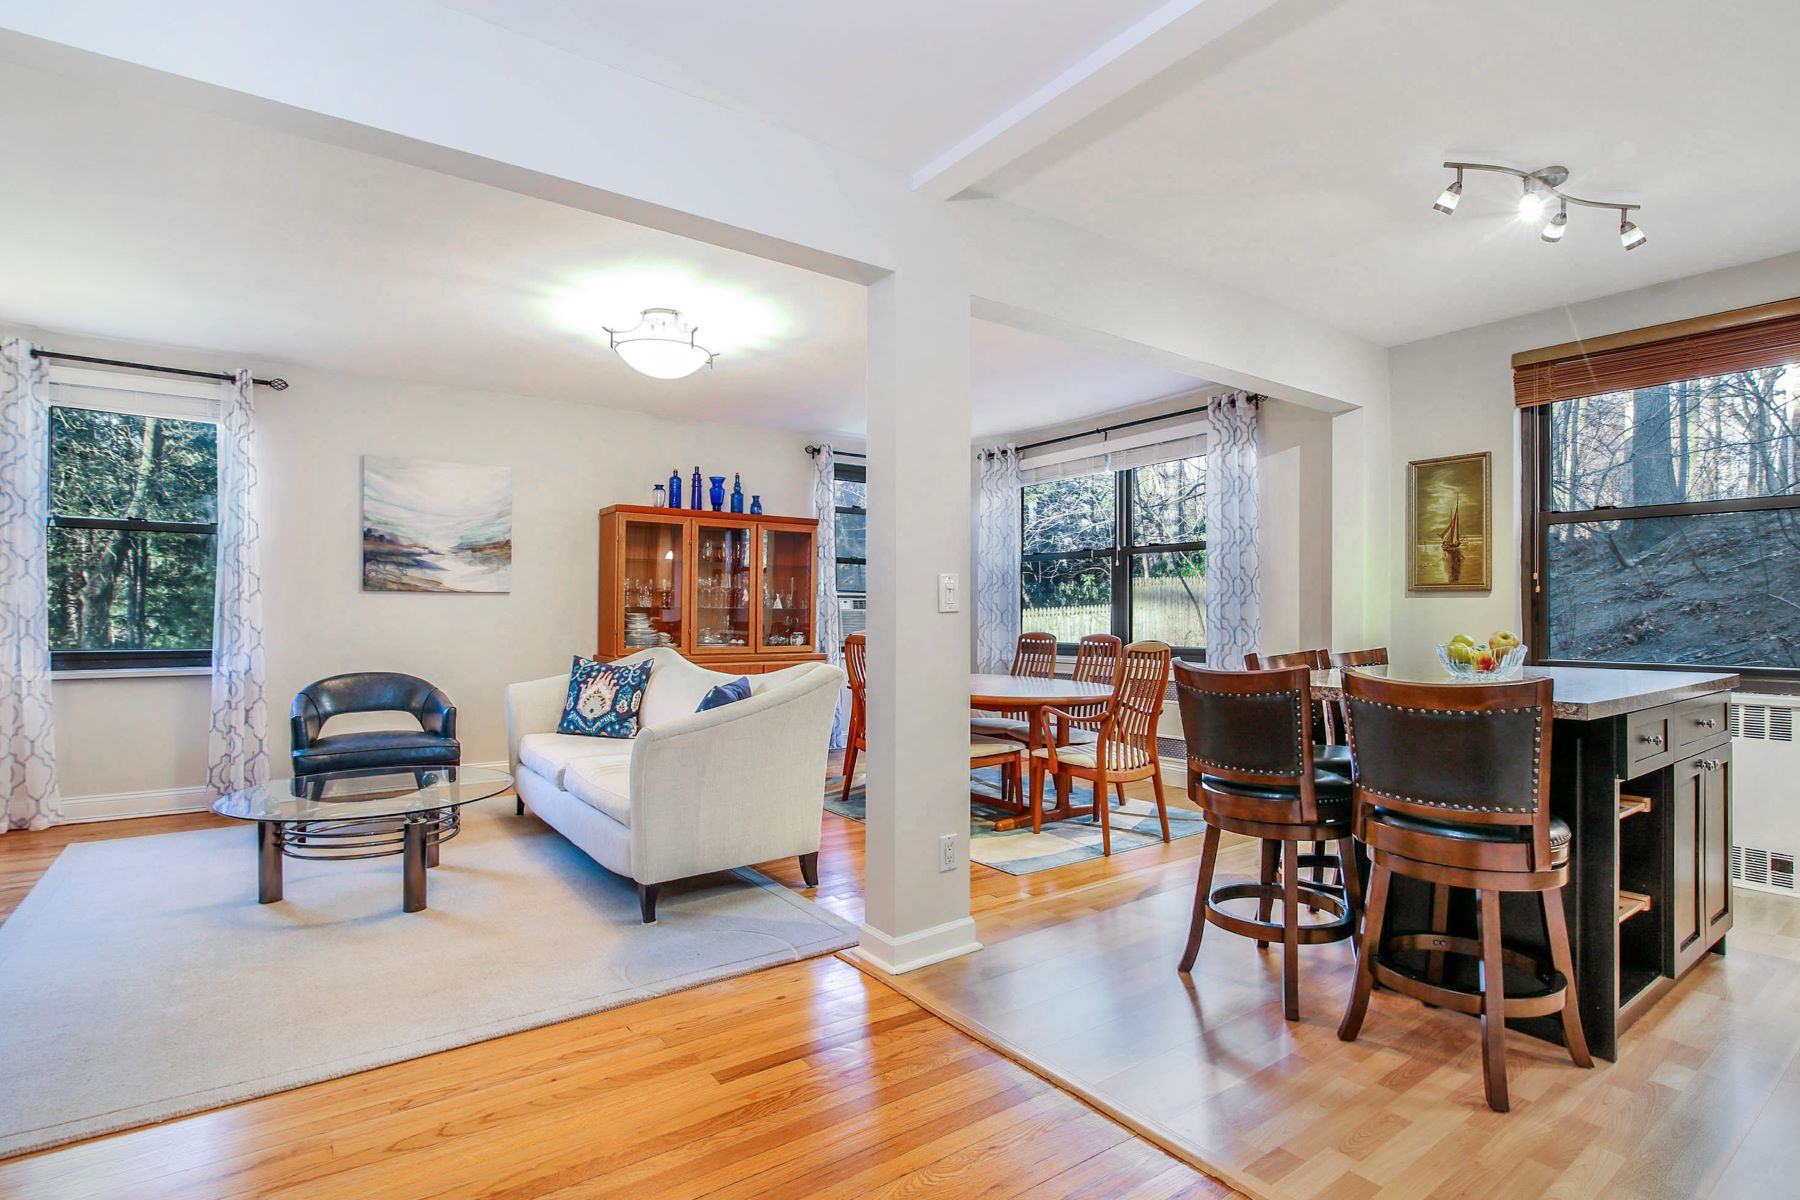 Co-op Properties for Sale at 80 Rockledge 1B Hartsdale, New York 10530 United States